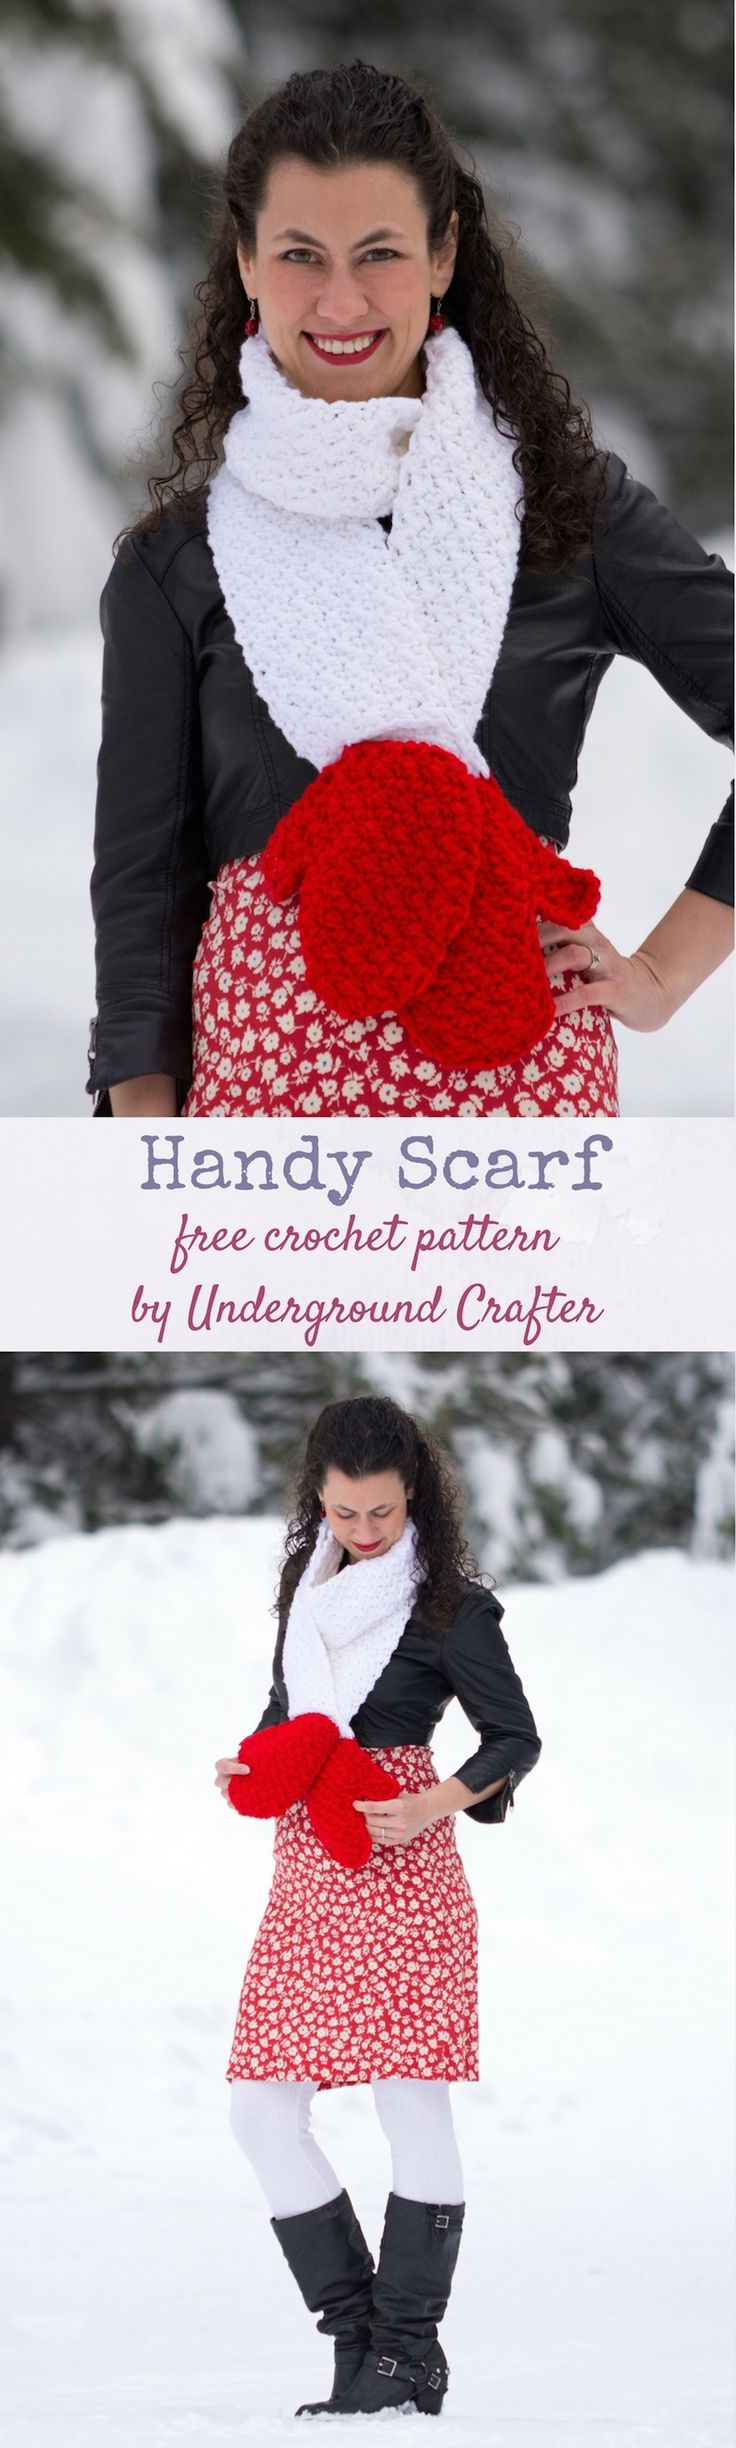 Free #crochet pattern: Handy Scarf in Red Heart Super Saver #yarn by Underground Crafter | This cozy keyhole scarf features two mock mittens at the end. This pattern is part of the Crochet Charity Drive with Blackstone Designs. Find the Crochet Charity Drive group on Facebook! #crochetcharitydrive #redheartyarns #joycreators #redheartsupersaver